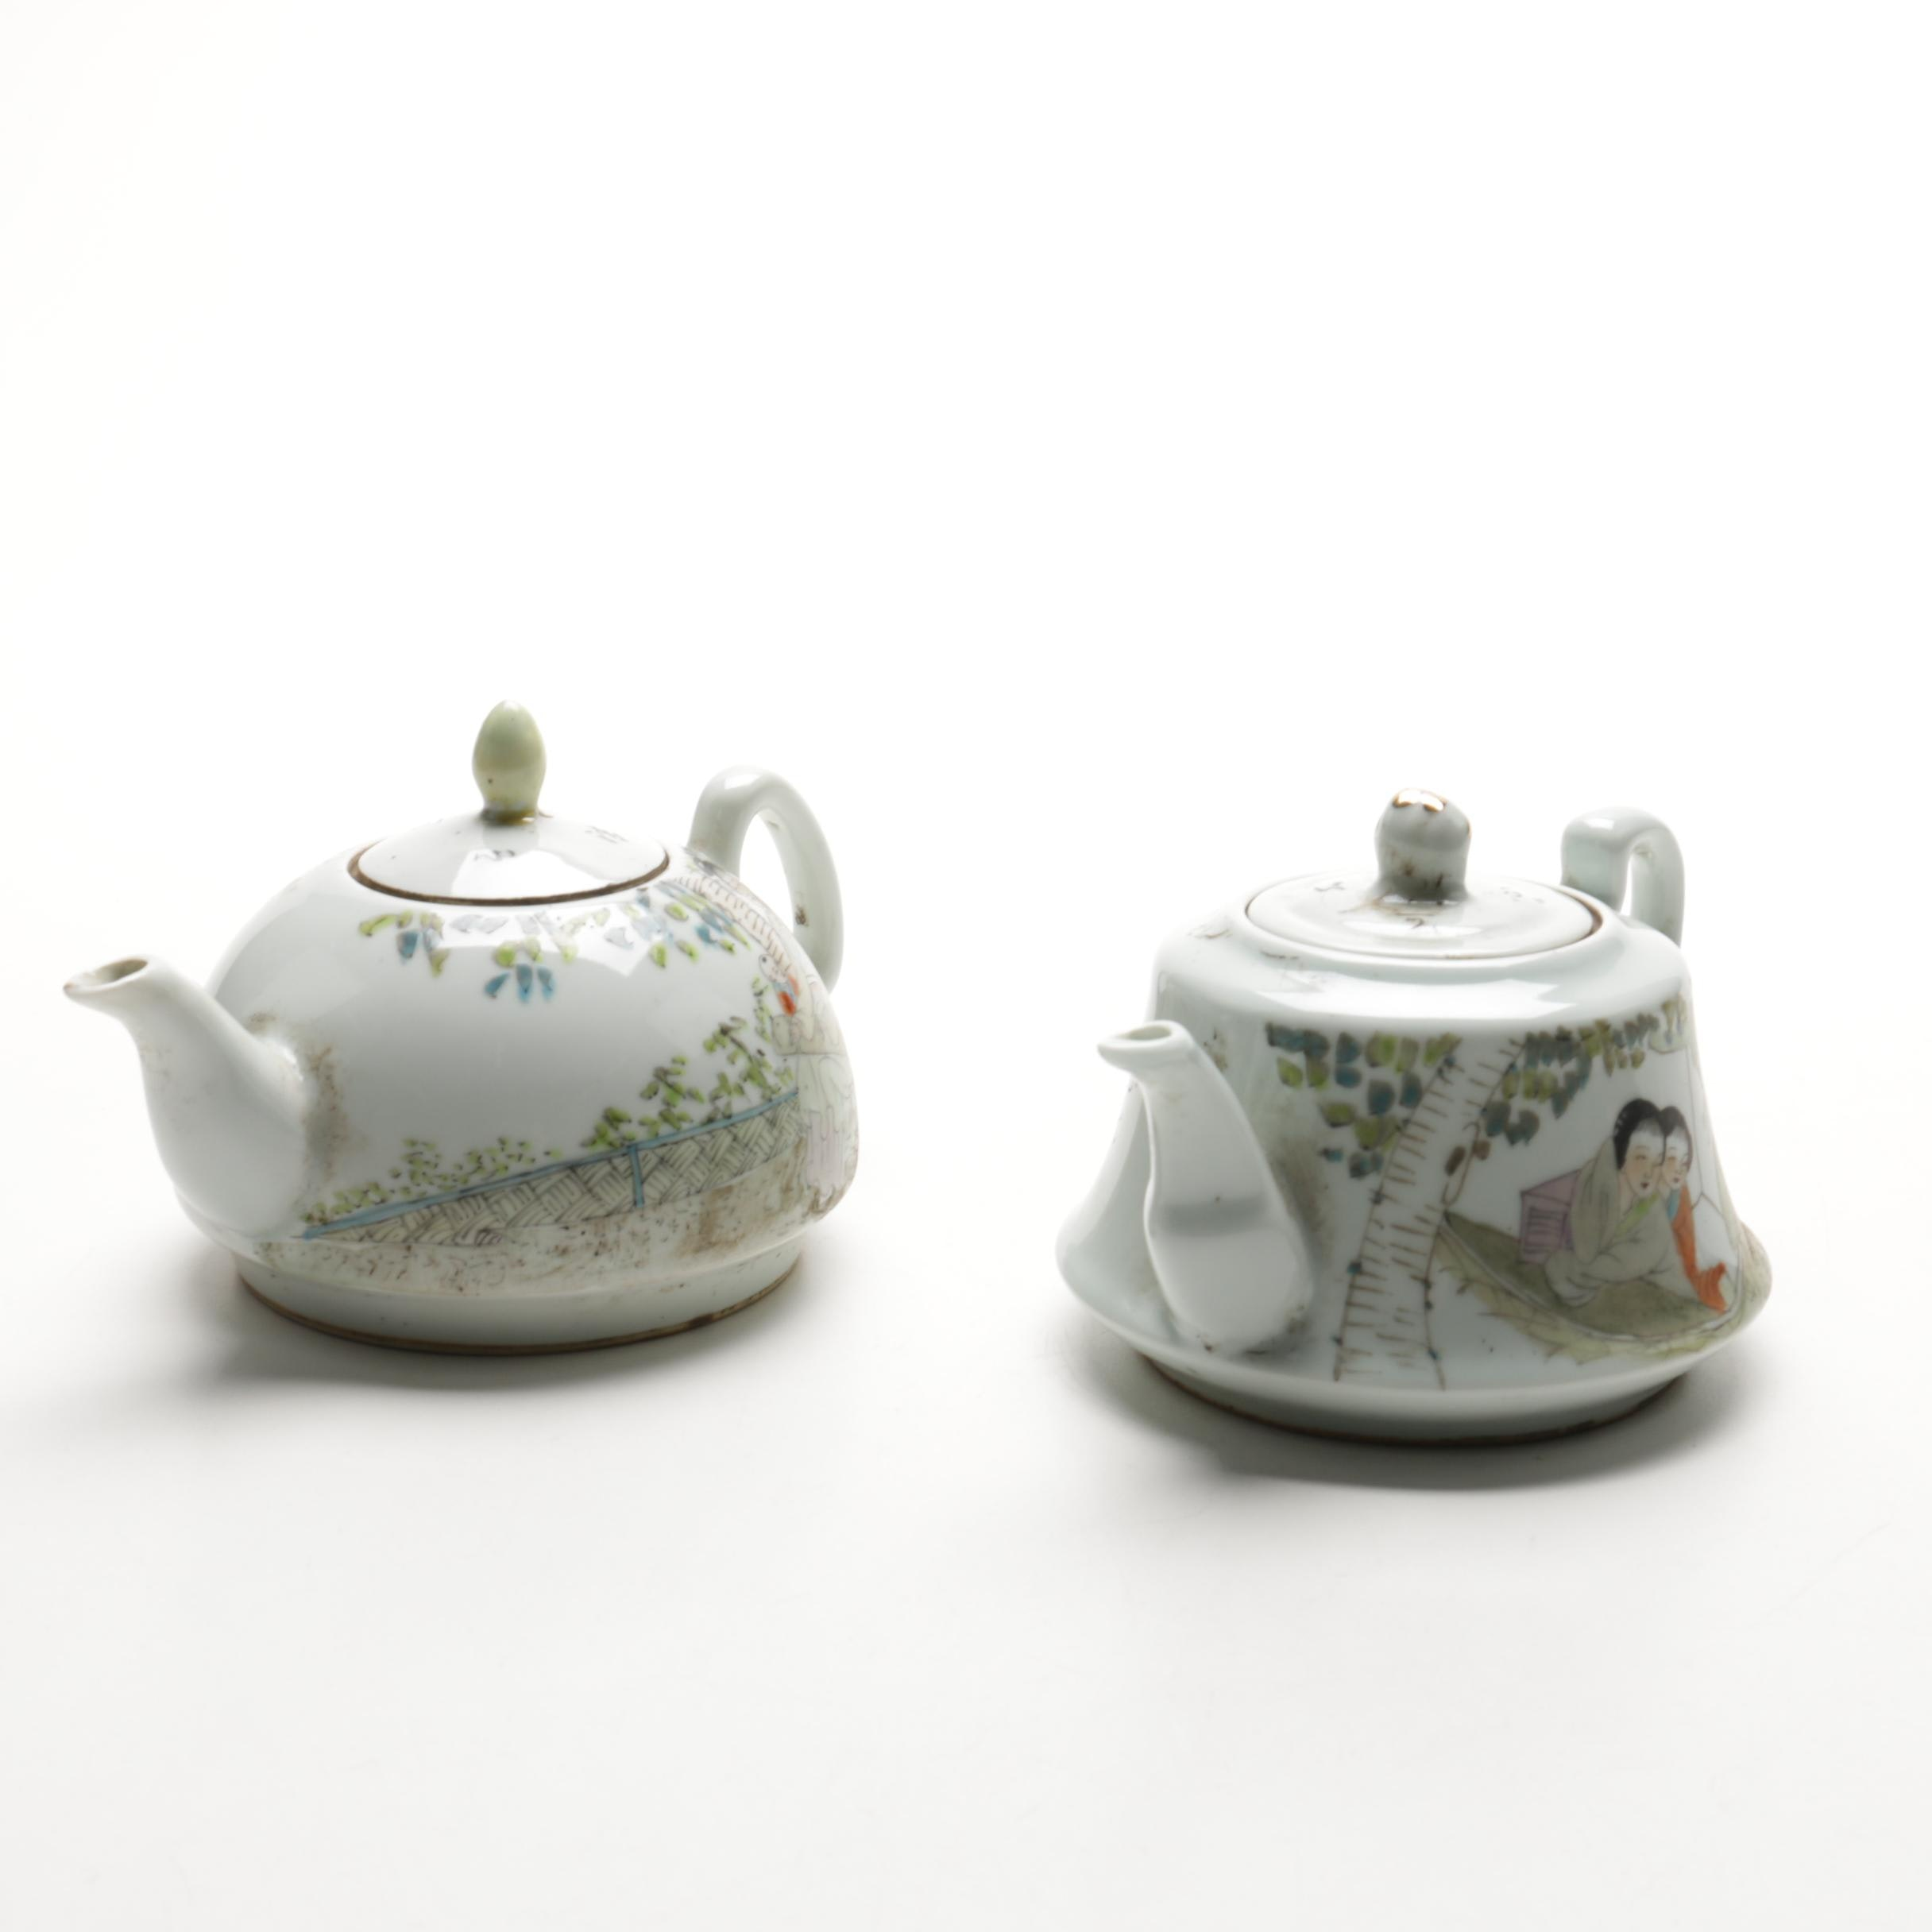 Hand-painted Chinese Porcelain Teapots